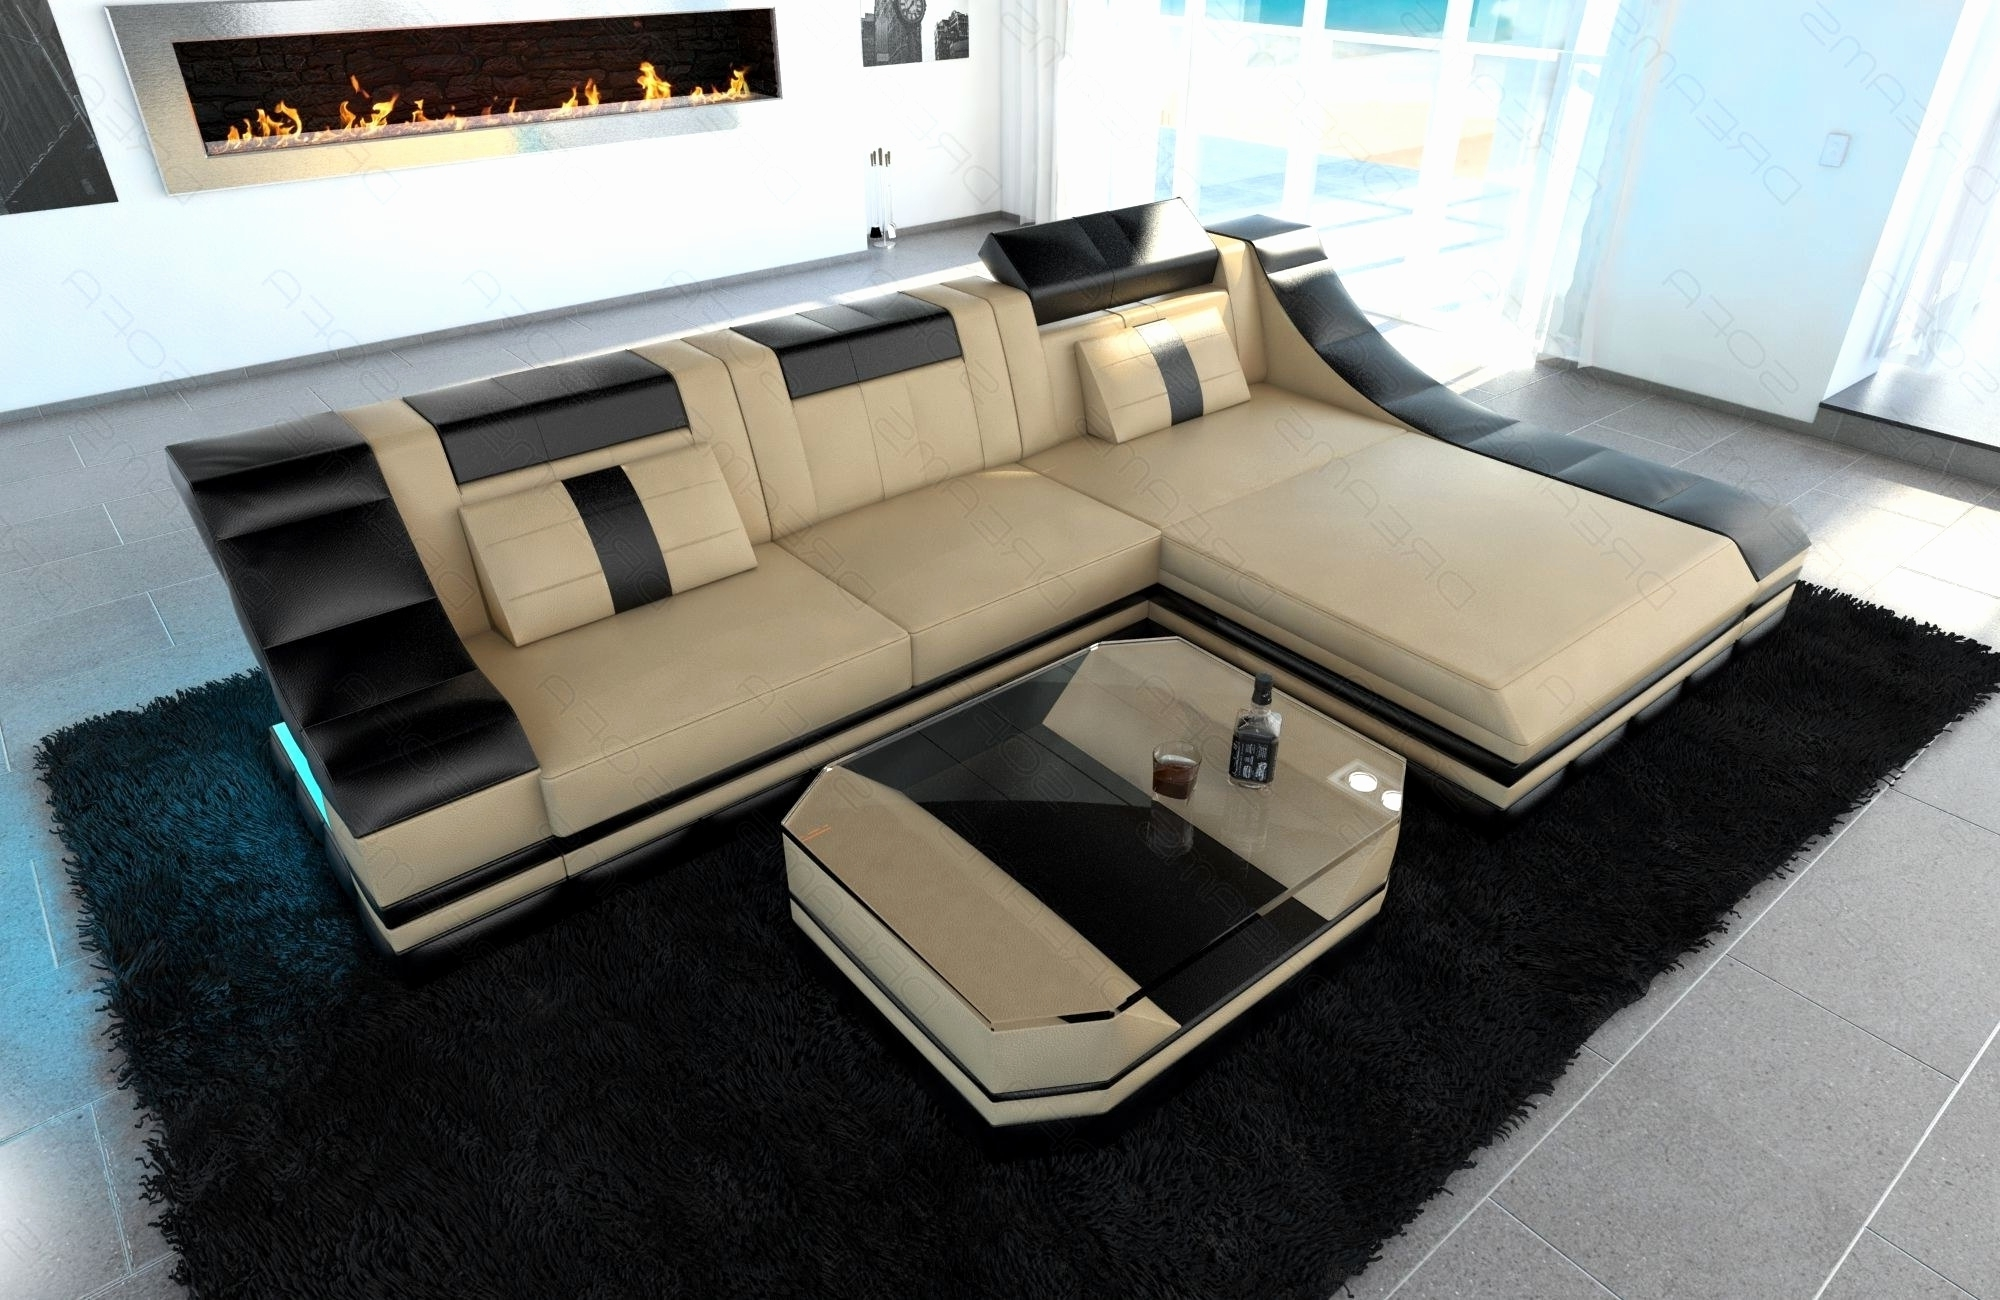 Well Known Luxury Small Sectional Sofas 2018 – Couches Ideas Pertaining To Luxury Sectional Sofas (View 12 of 20)